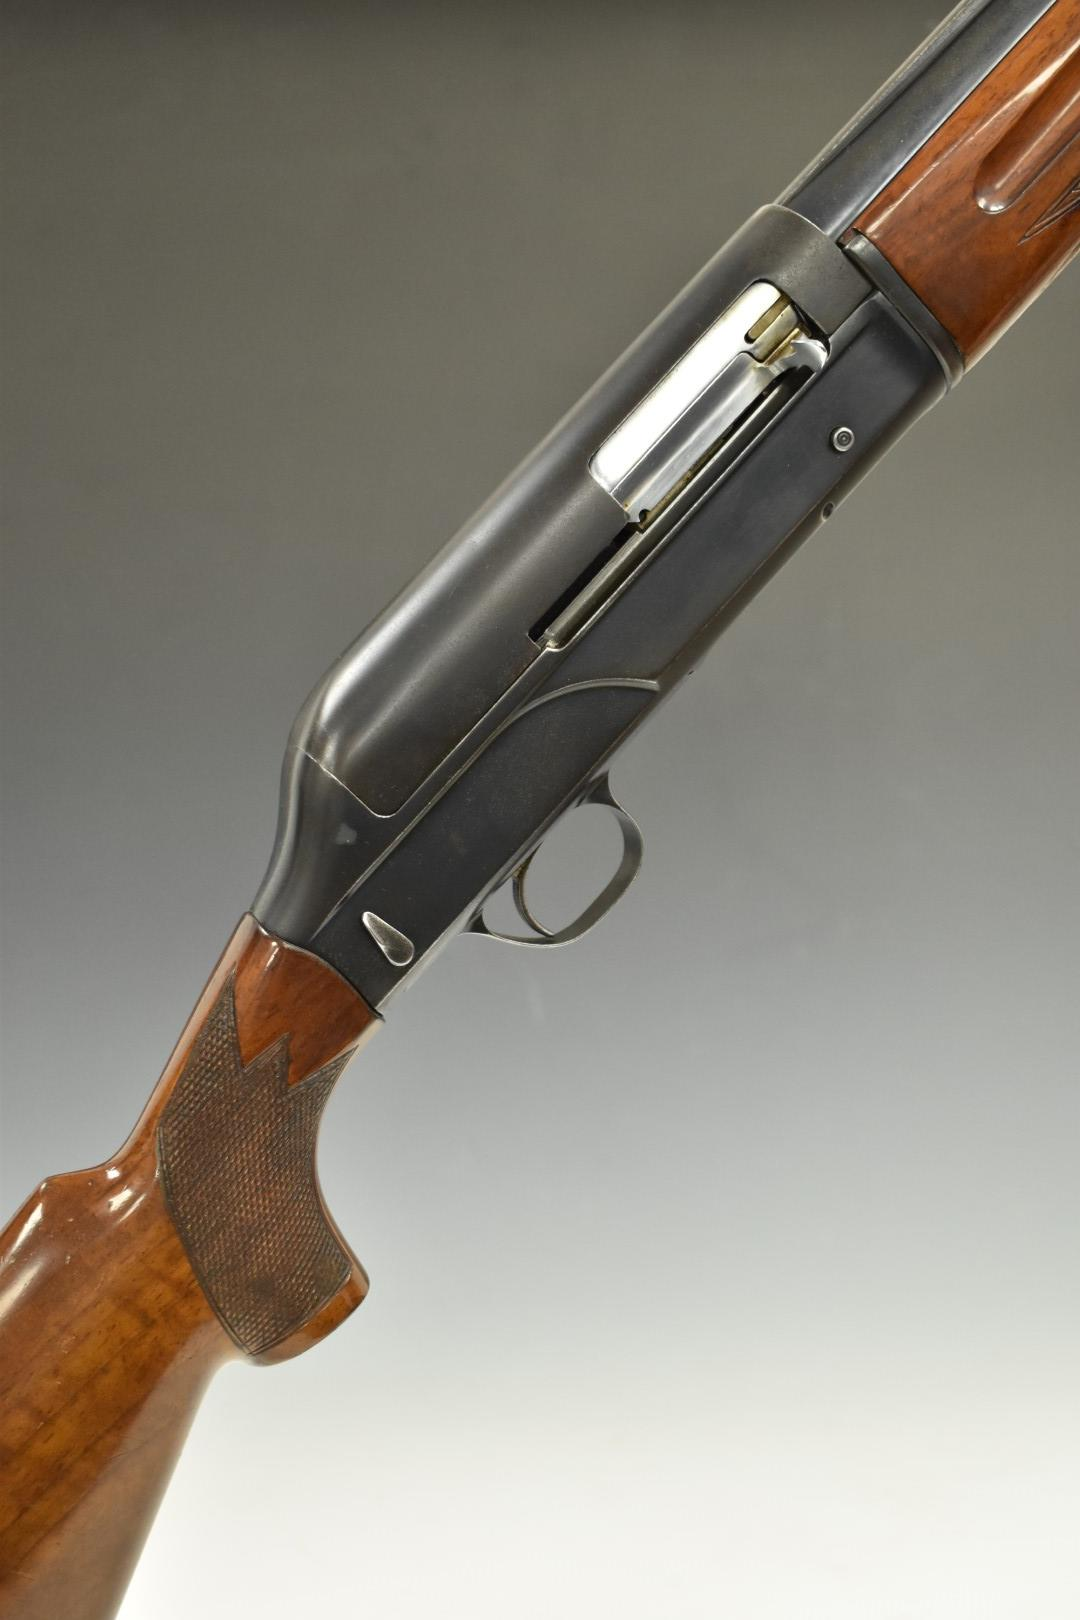 Breda 12 bore four-shot semi-automatic shotgun with chequered semi-pistol grip and forend, vented